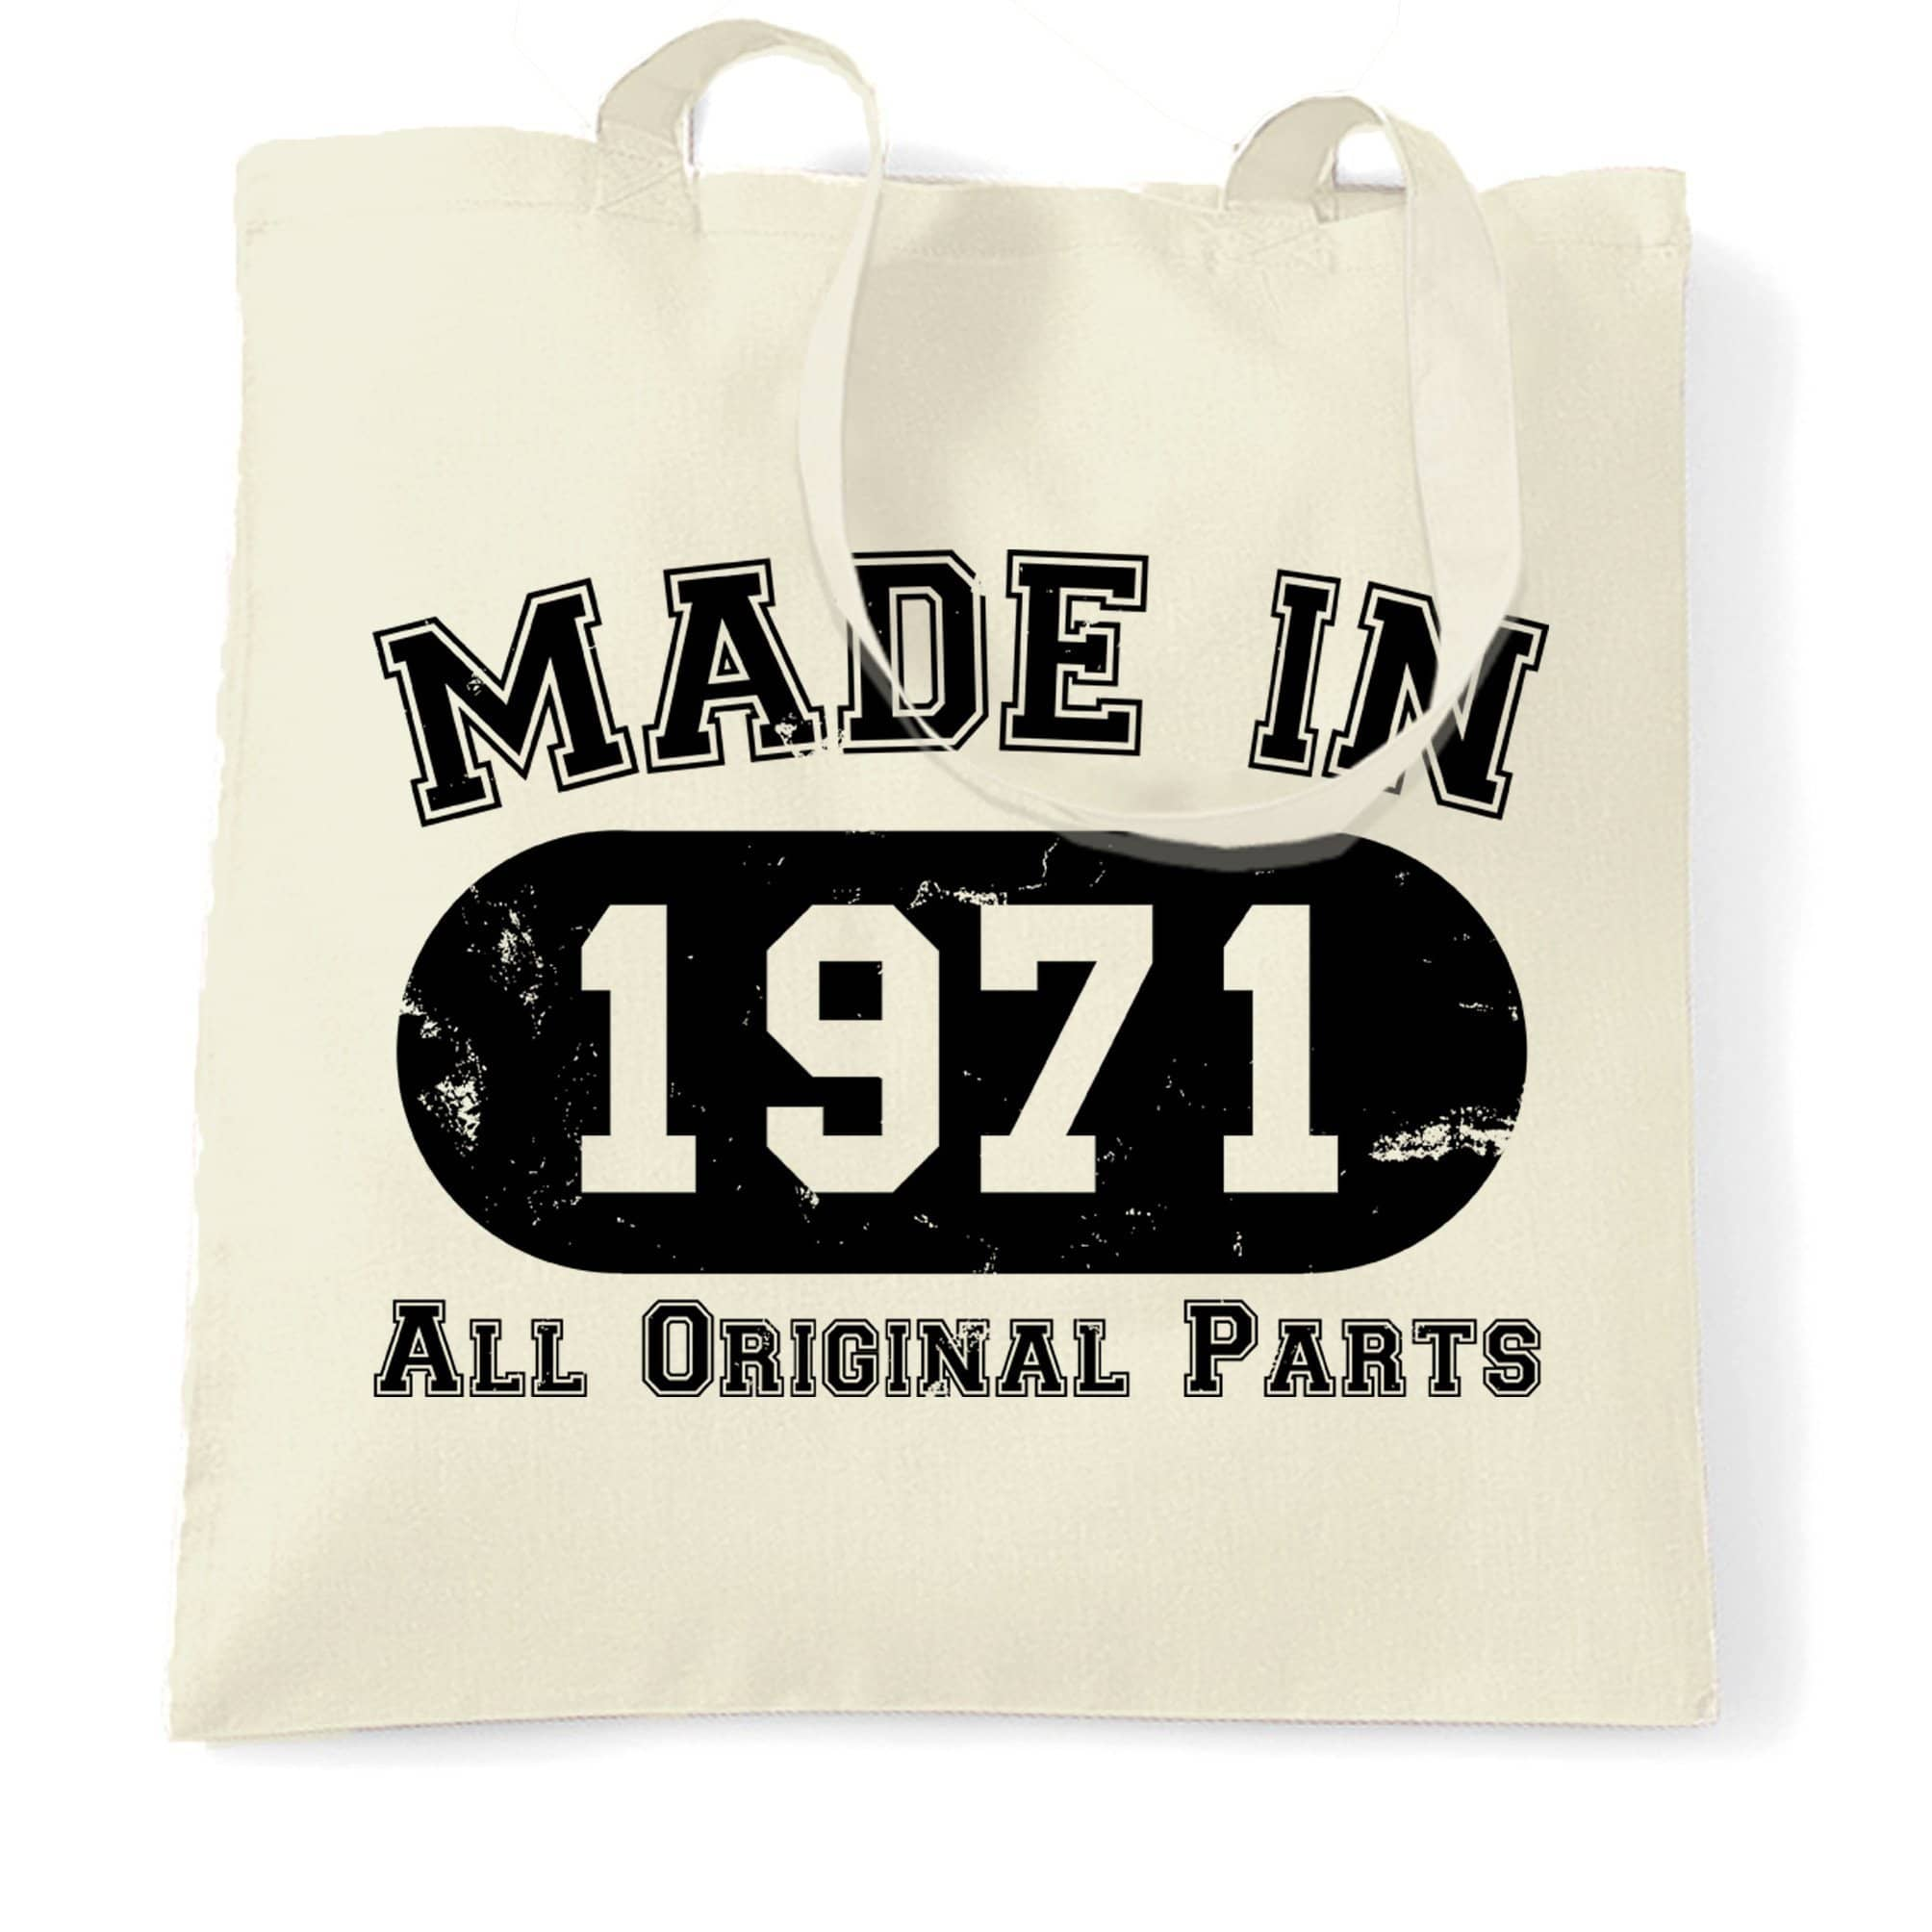 Made in 1971 All Original Parts Tote Bag [Distressed]